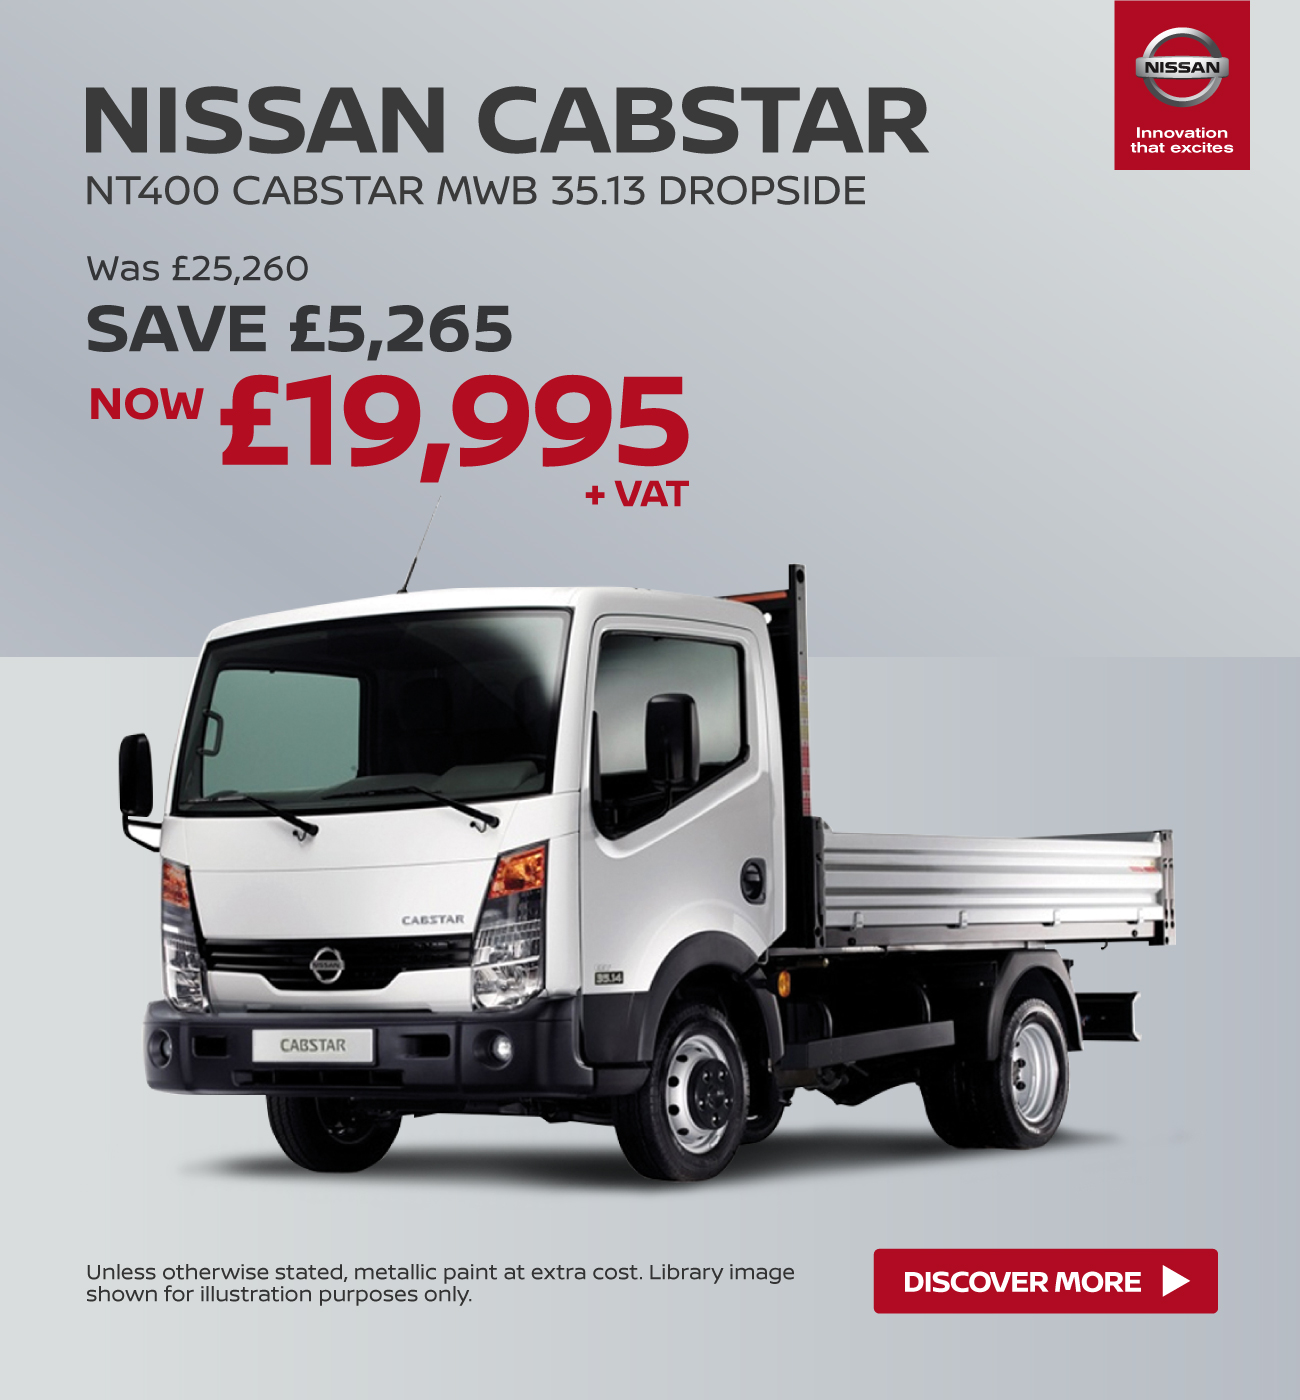 hight resolution of  nissan nt400 cabstar nissan cabstar mwb dropside banner 1